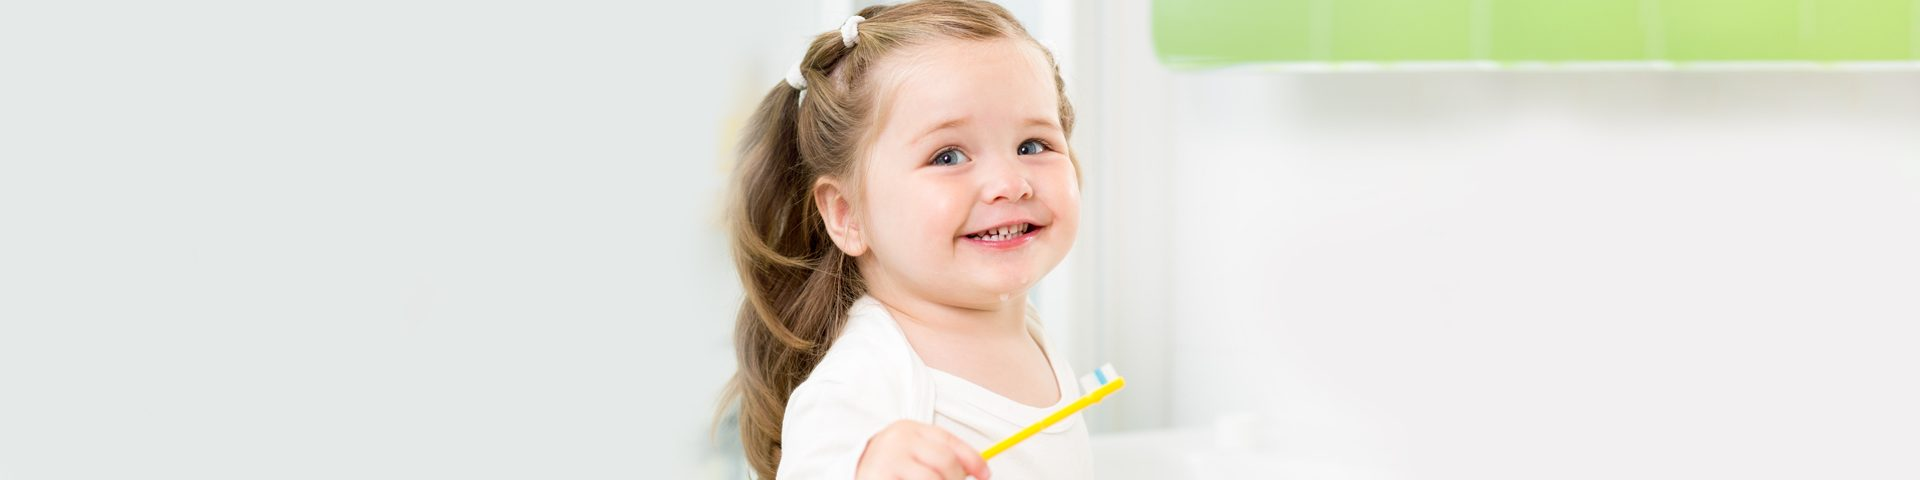 Why Stainless Steel Caps is The Best Option for Your Child's Damaged Teeth